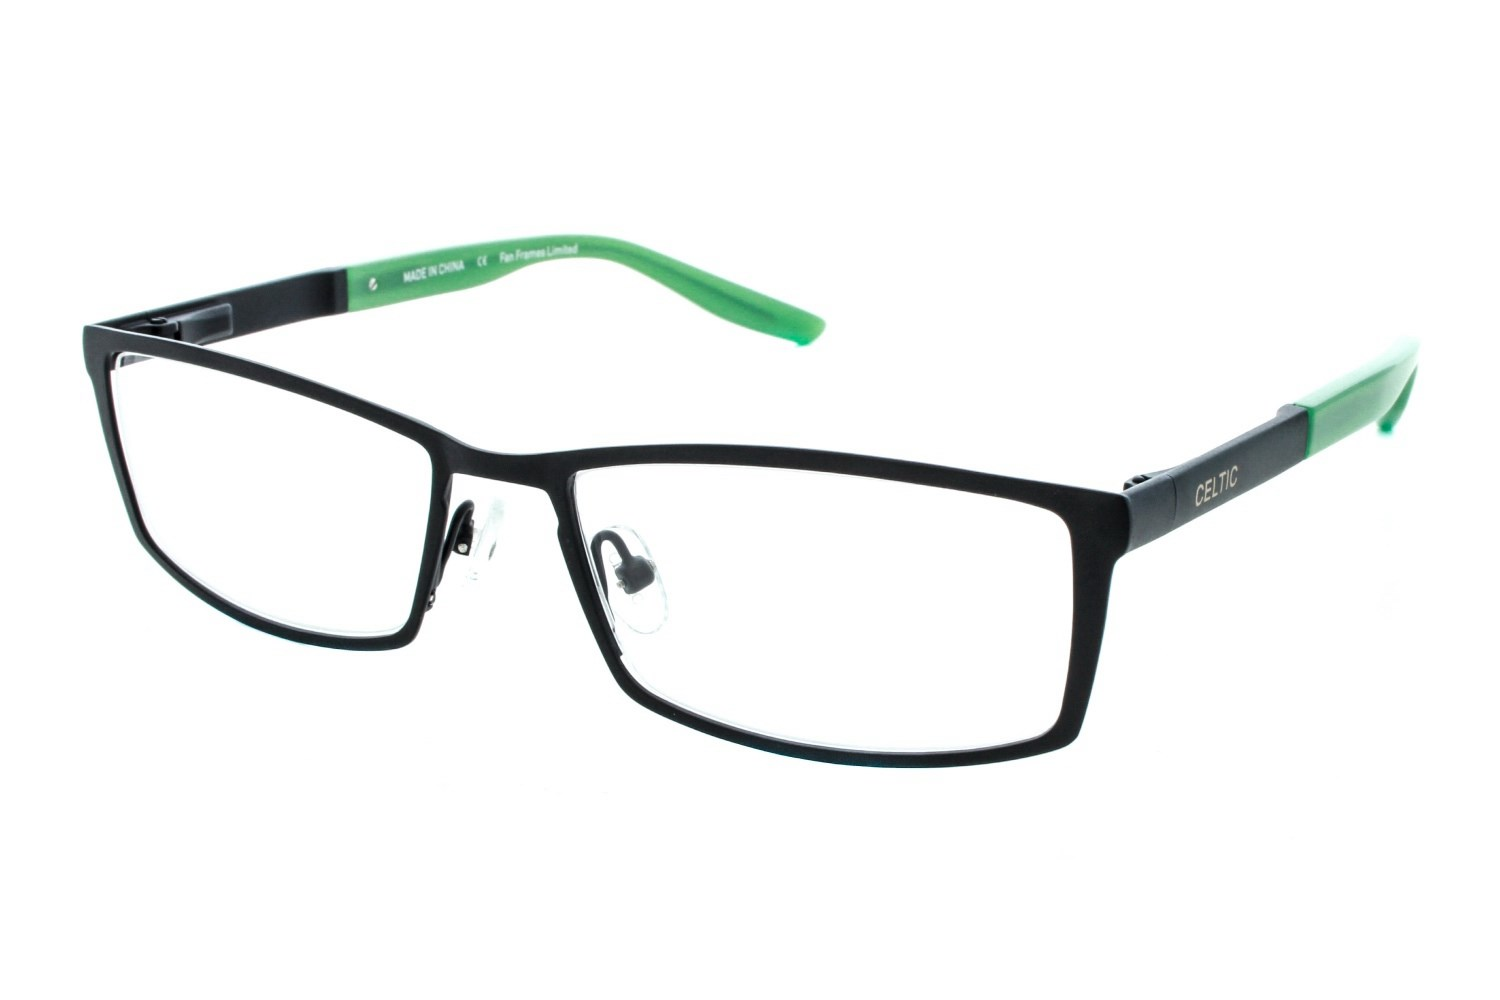 Glasses Frame Website : Fan Frames Celtic FC - Metal Prescription Eyeglasses ...